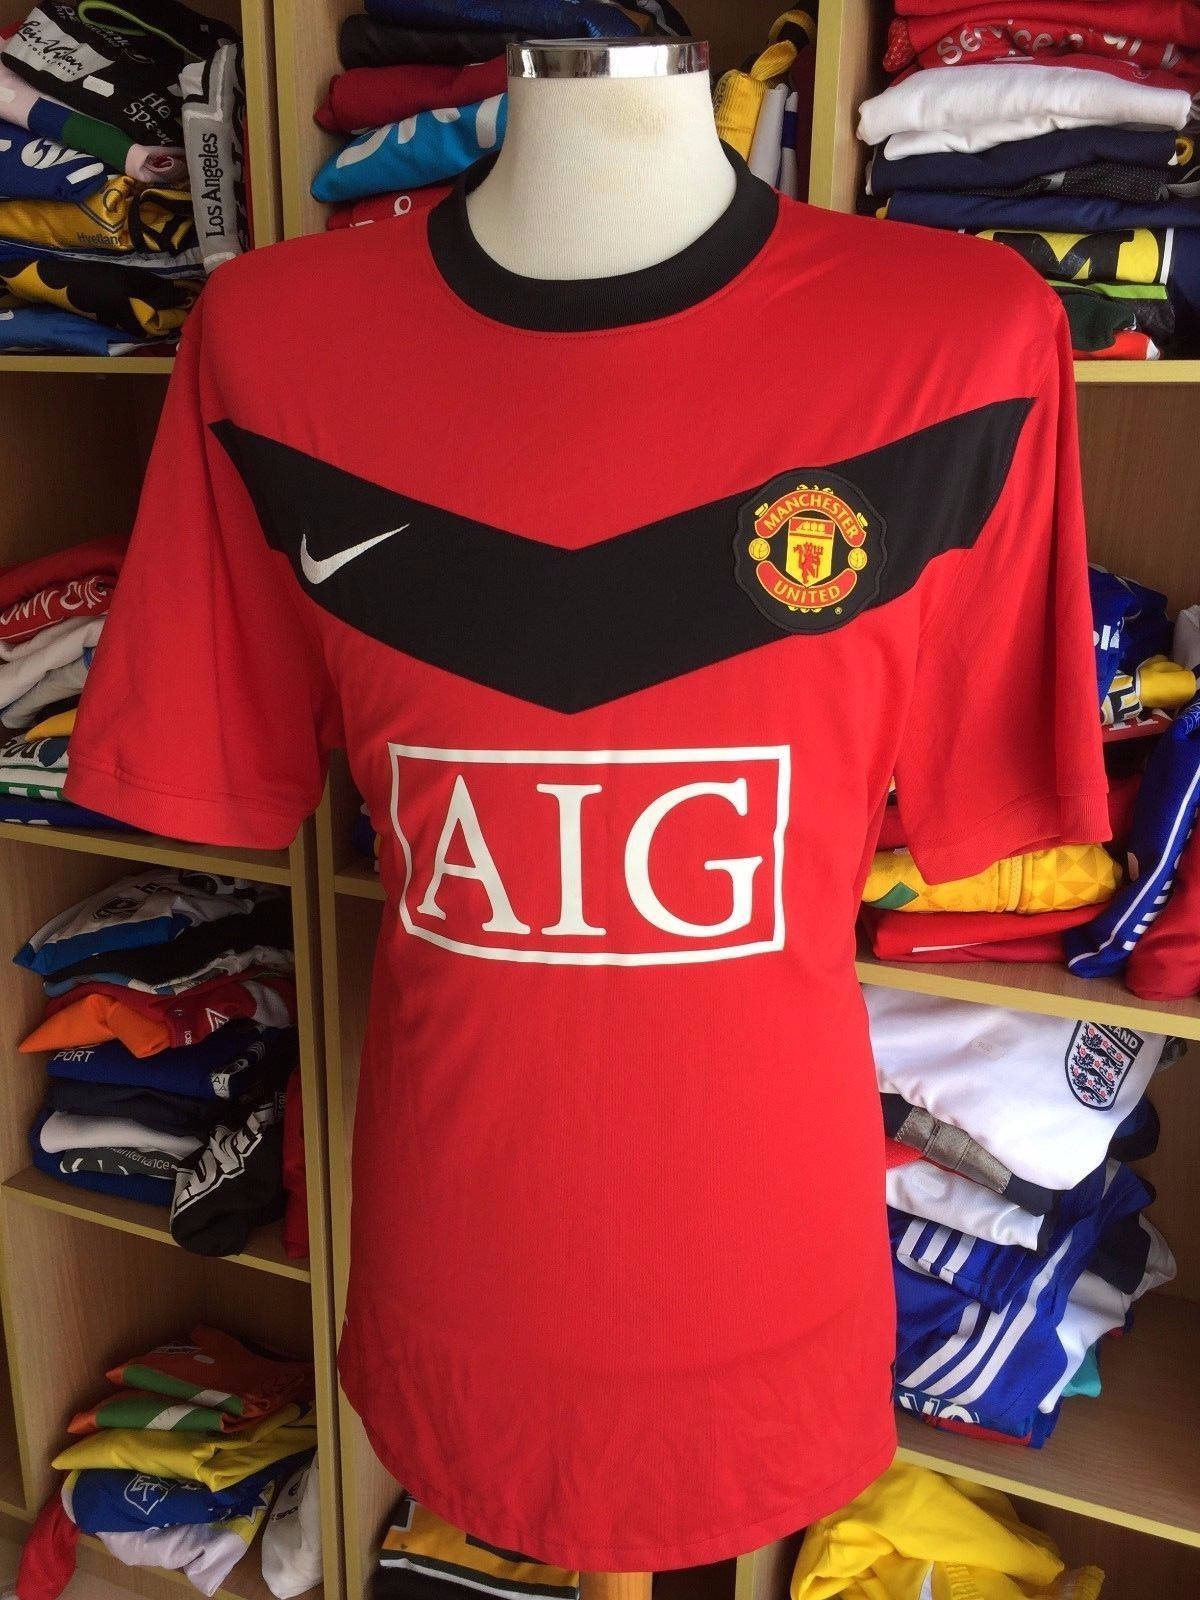 finest selection 1e127 1cea1 Jersey Manchester United 2009/10 (XXL) Home and 50 similar items